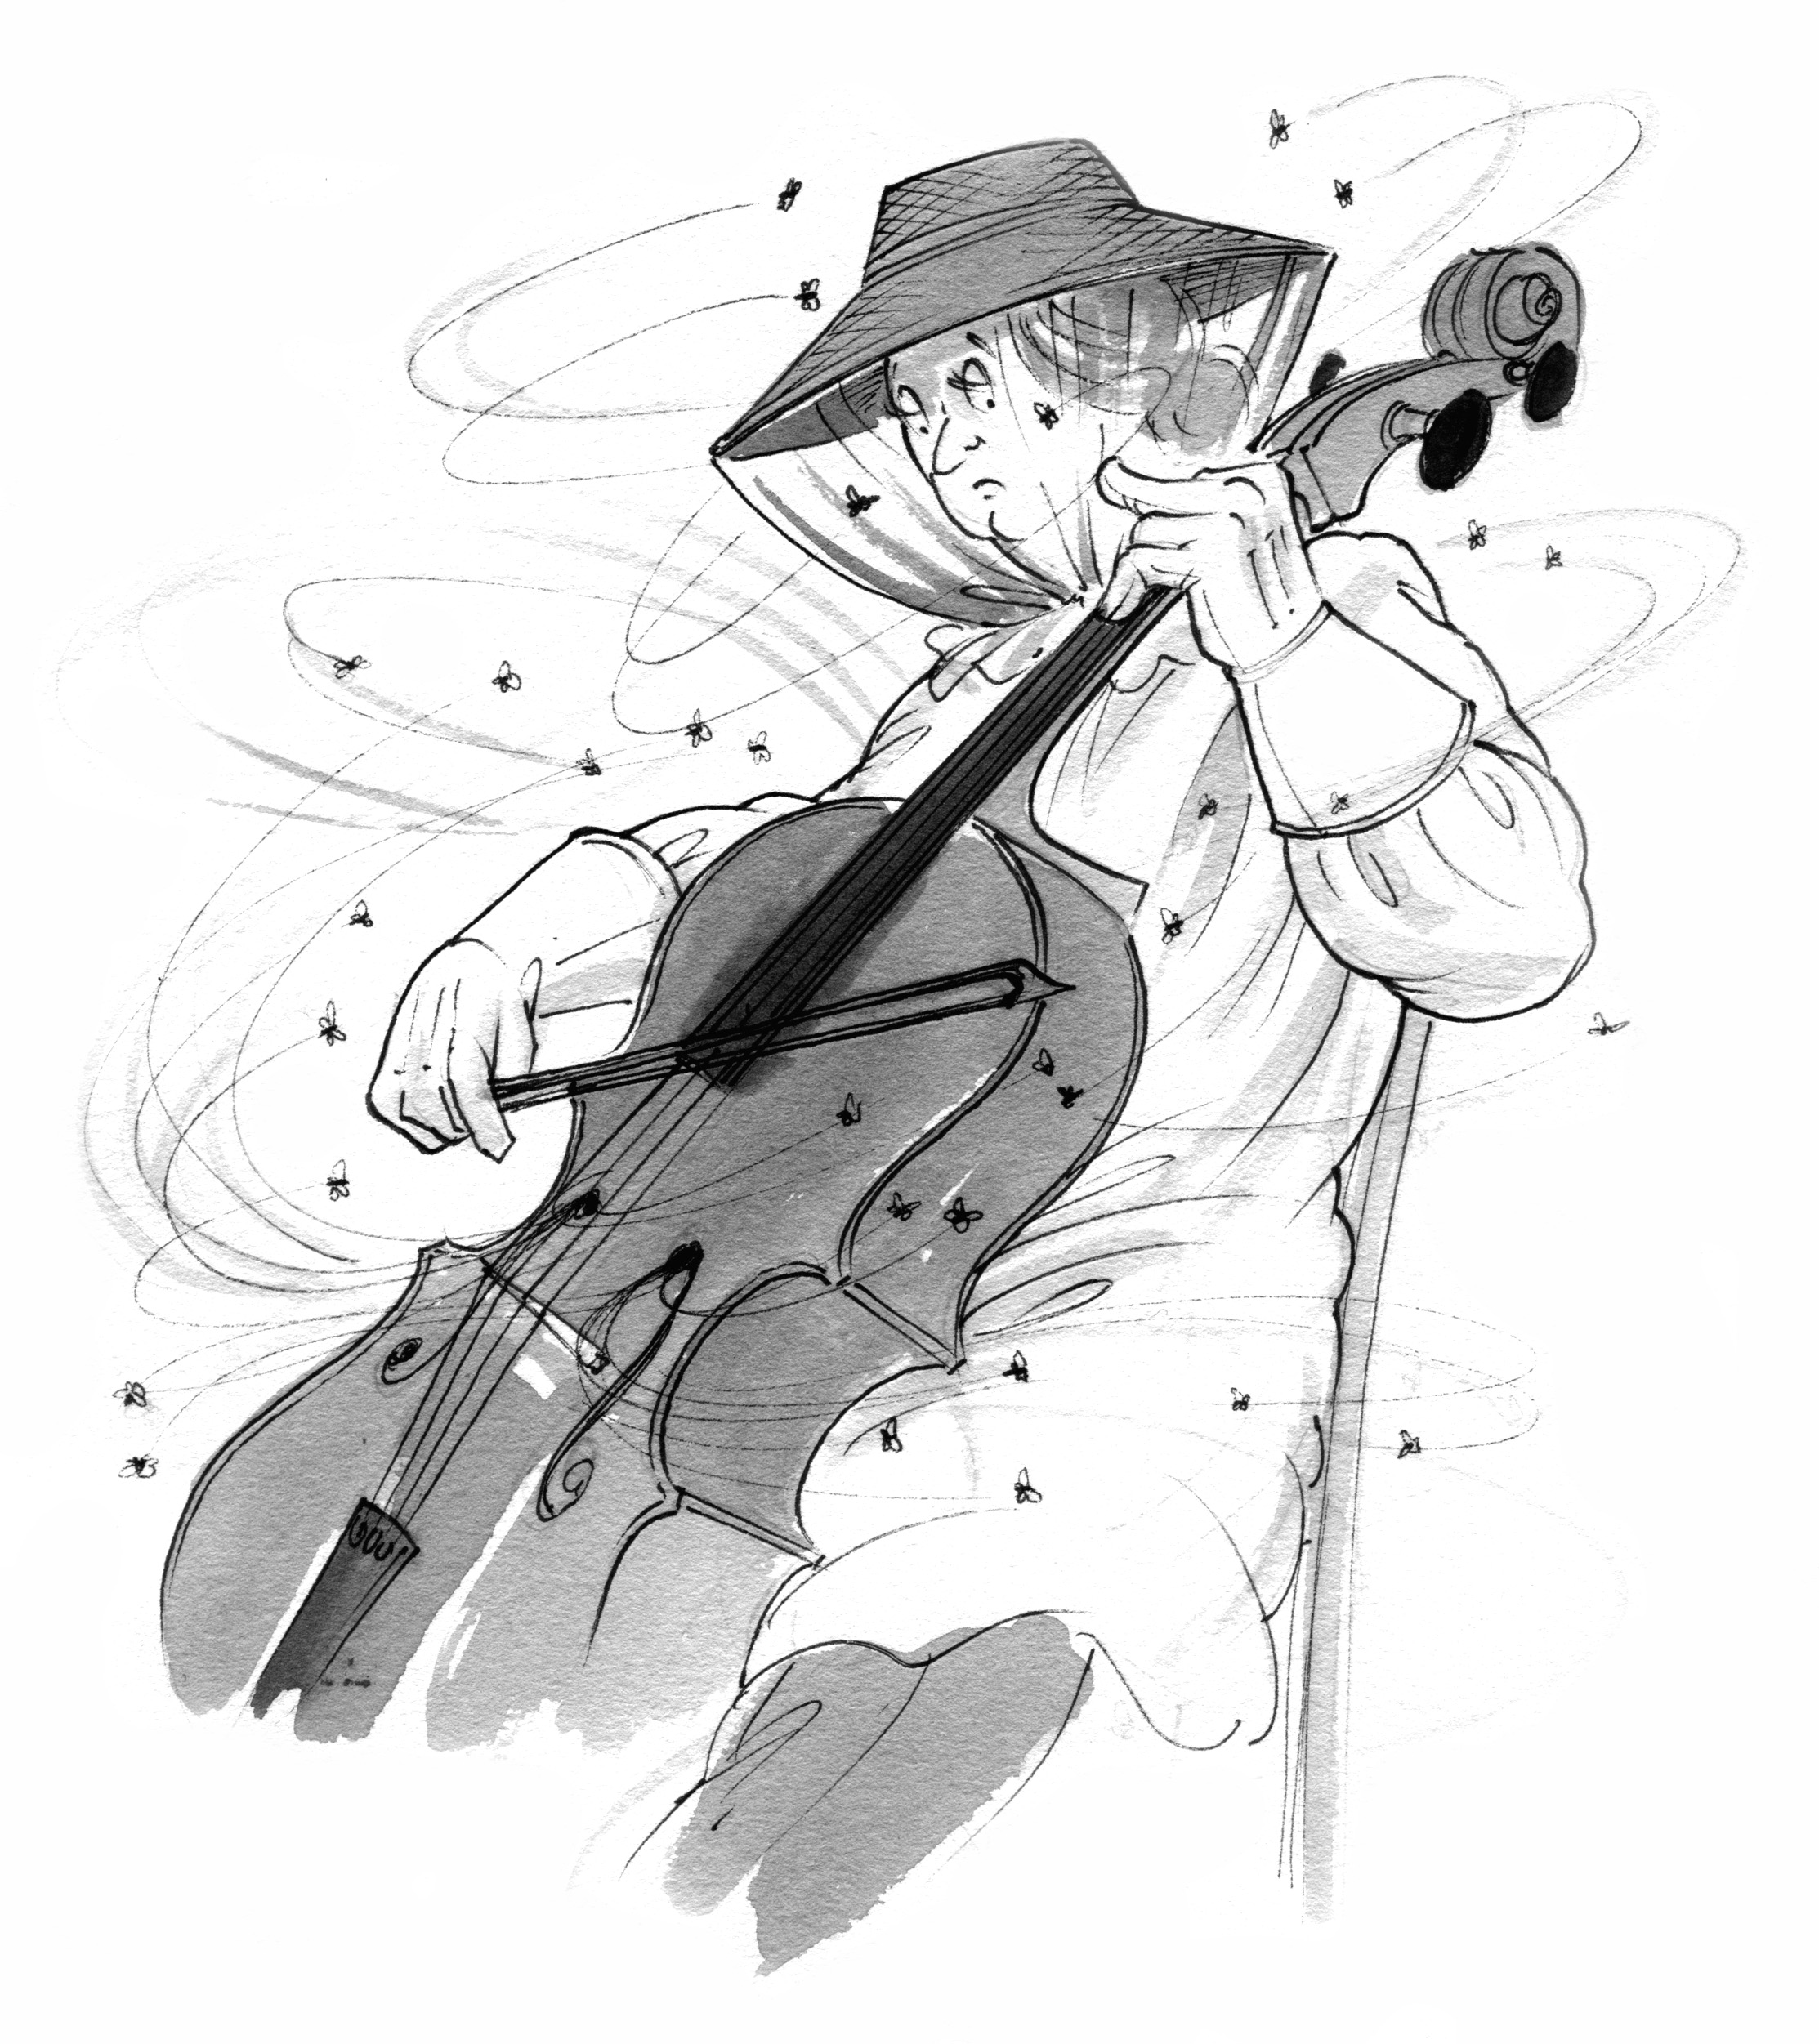 technical cello articles - cello buzz - Cartoon of a cellist in bee net being buzzed by lots of bees whilst playing